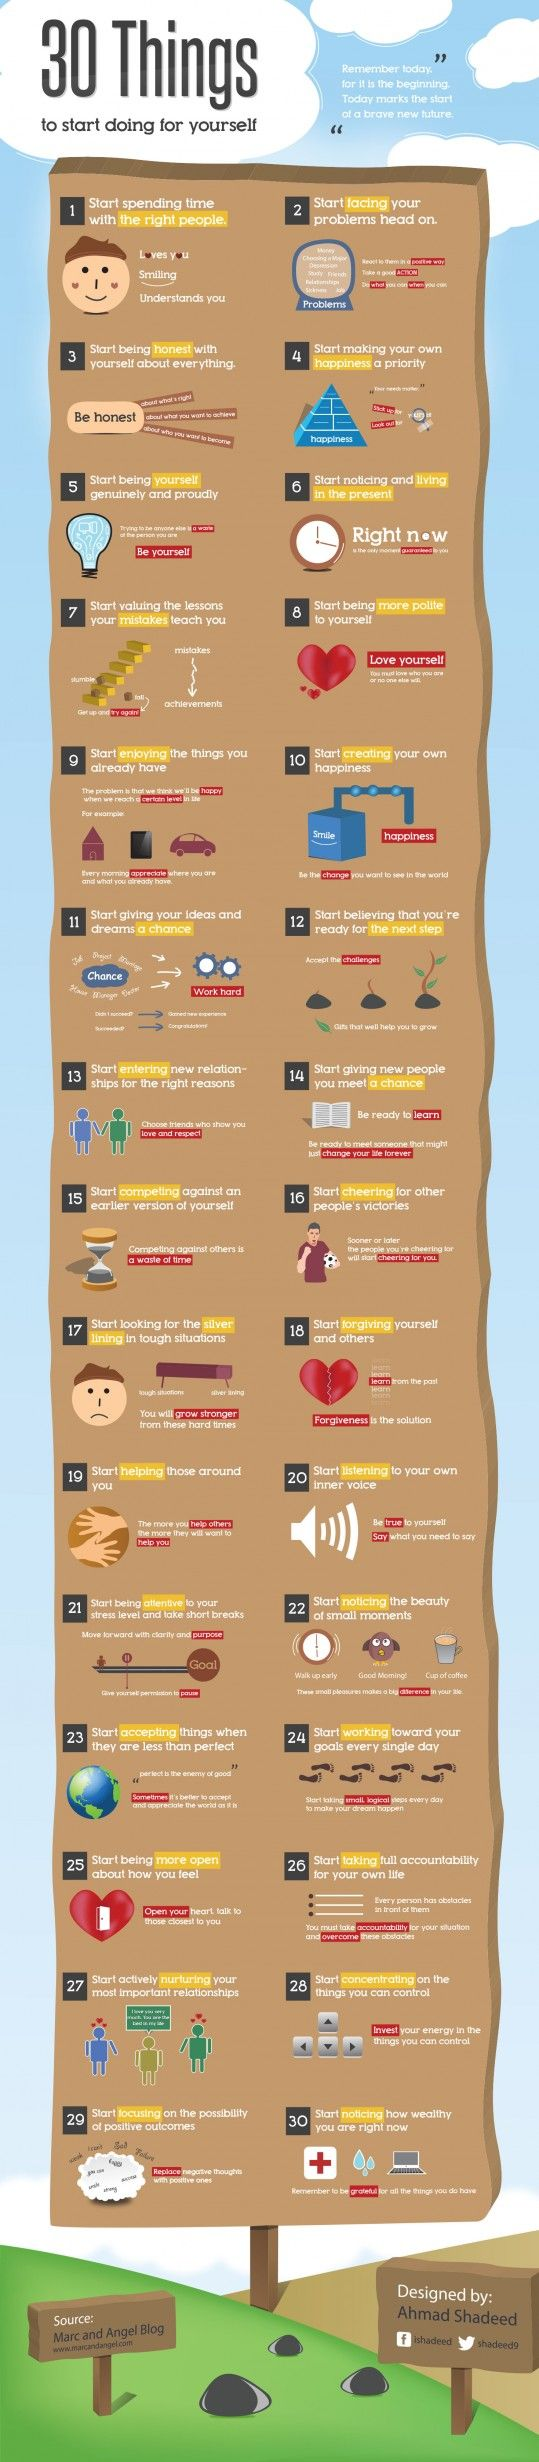 Daily #Infographic for your career >> 30 Things To Start Doing For Yourself - Bounce Back: Develop Your Resiliency